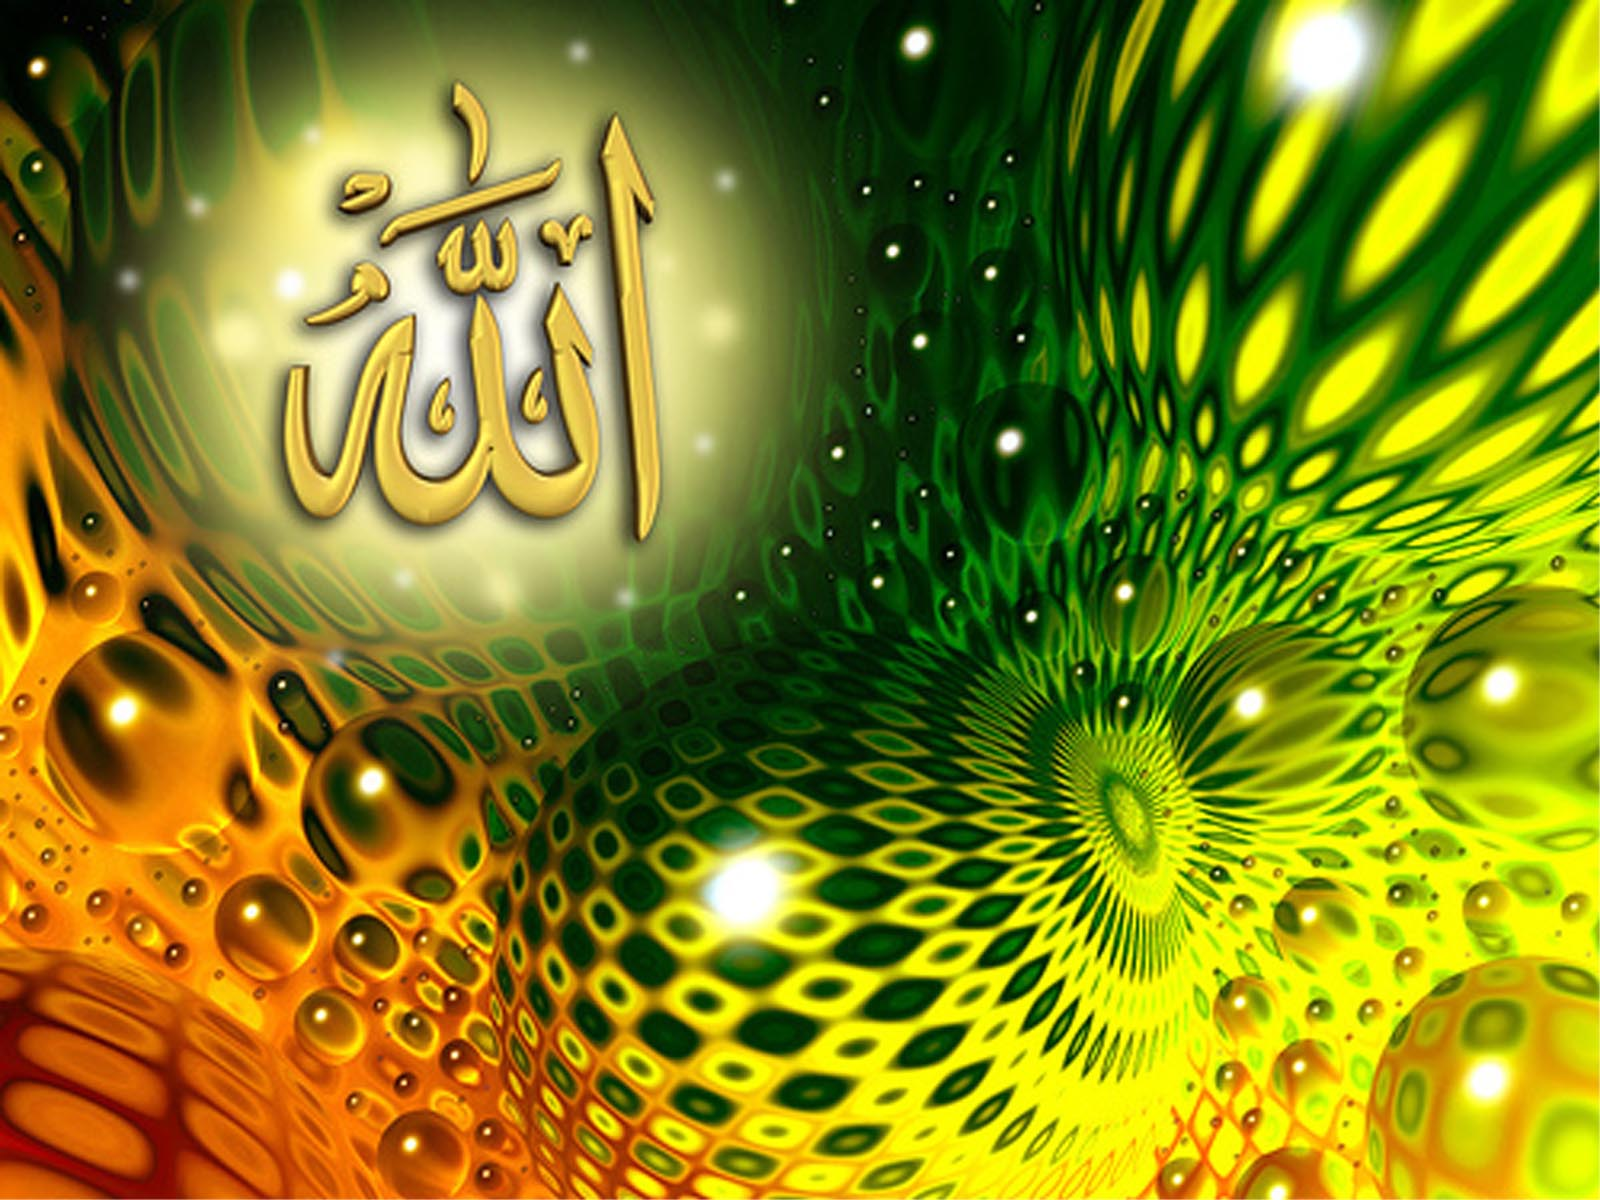 allah name wallpaper 2 allah name wallpaper 3 allah name wallpaper 4 1600x1200